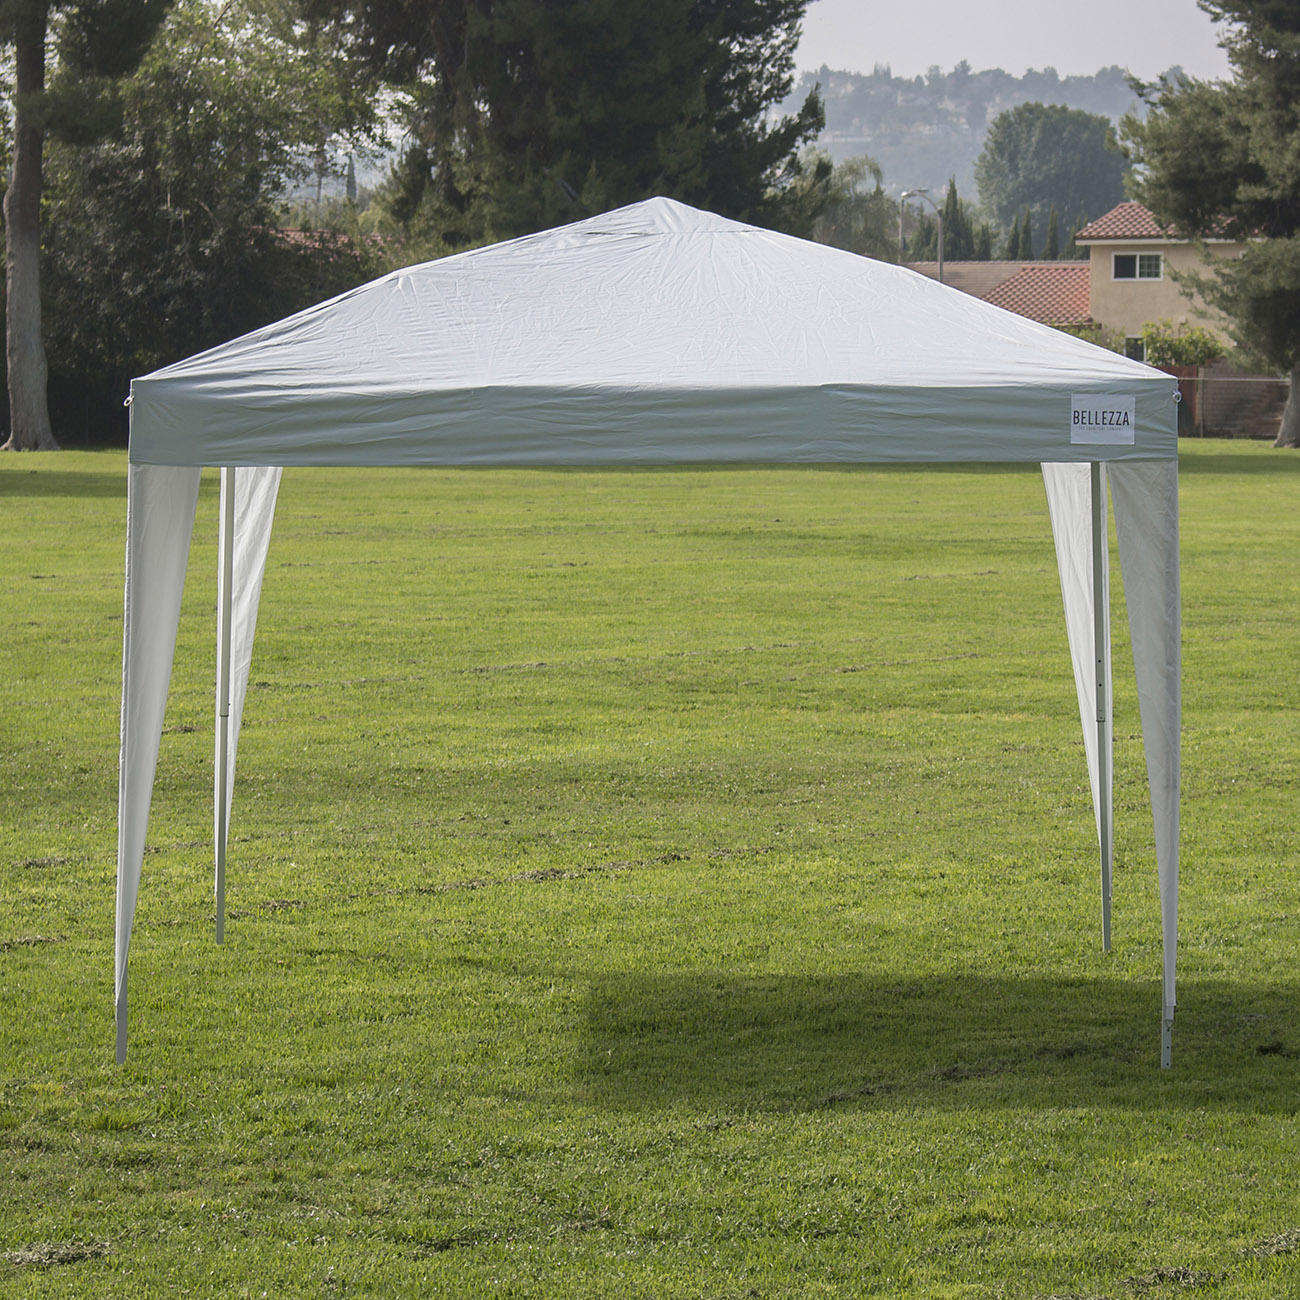 Easy Portable Shelters : X easy pop up tent instant shelter outdoor bbq